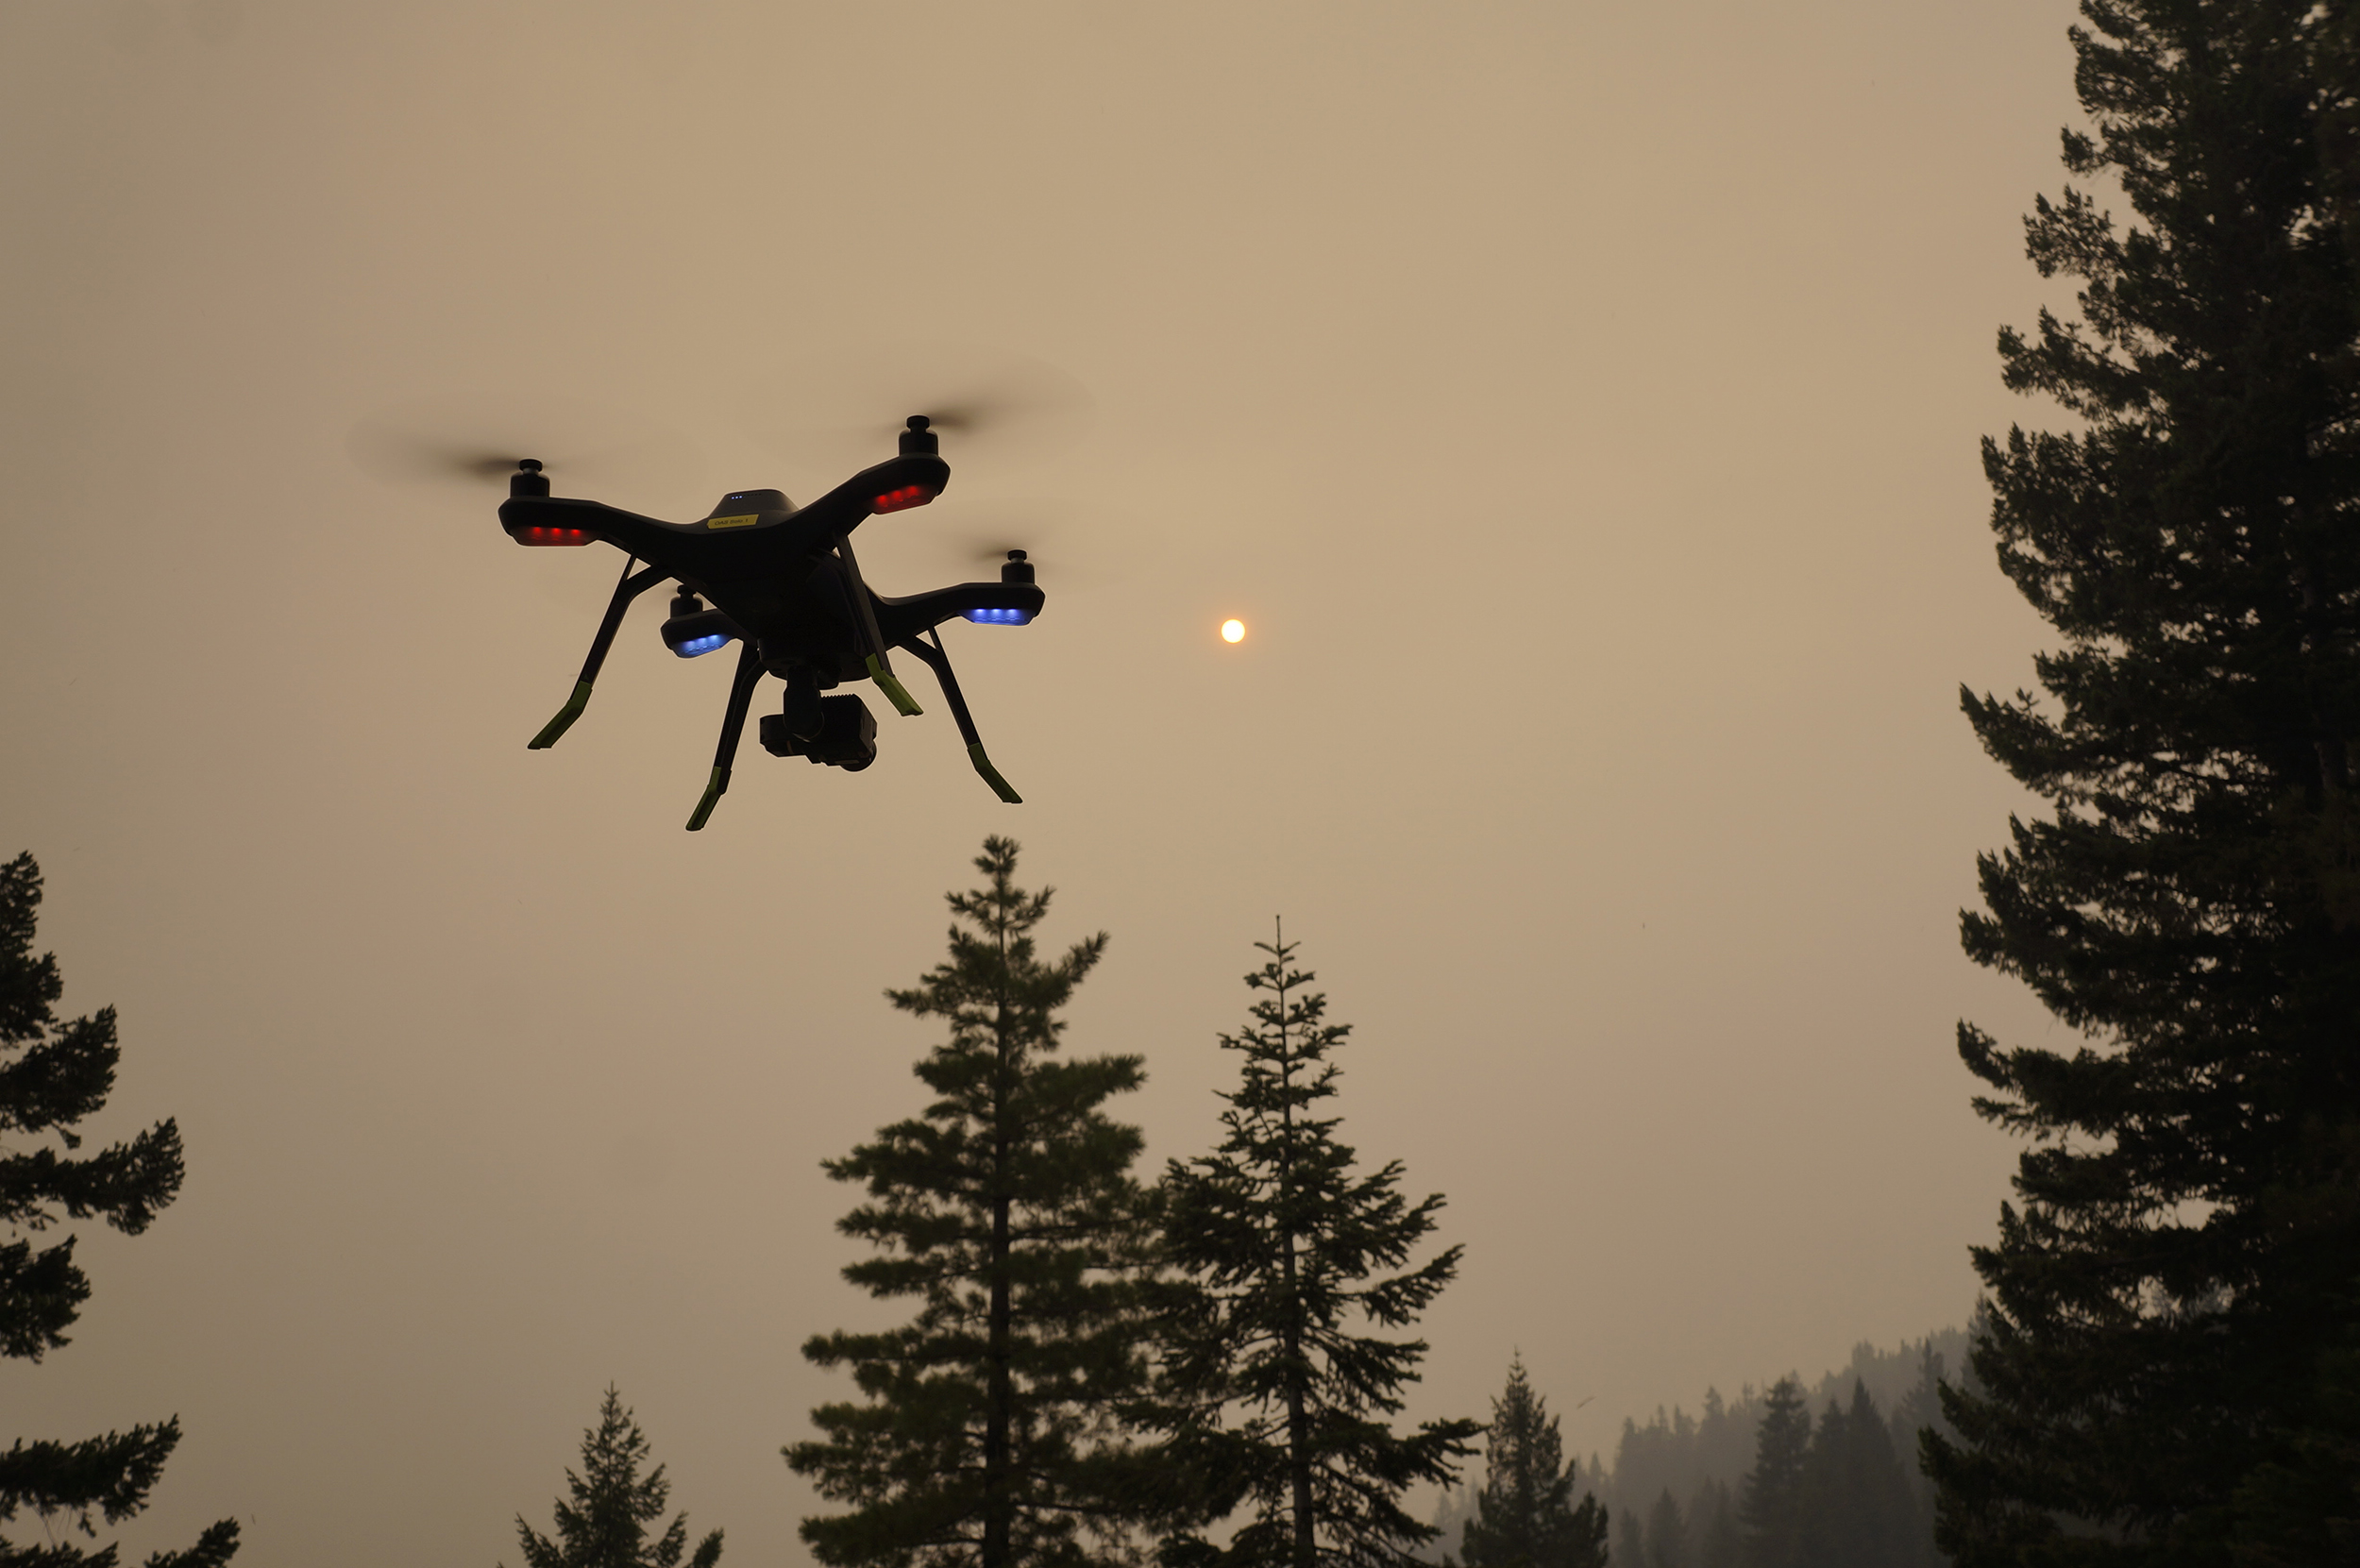 Image: Drone